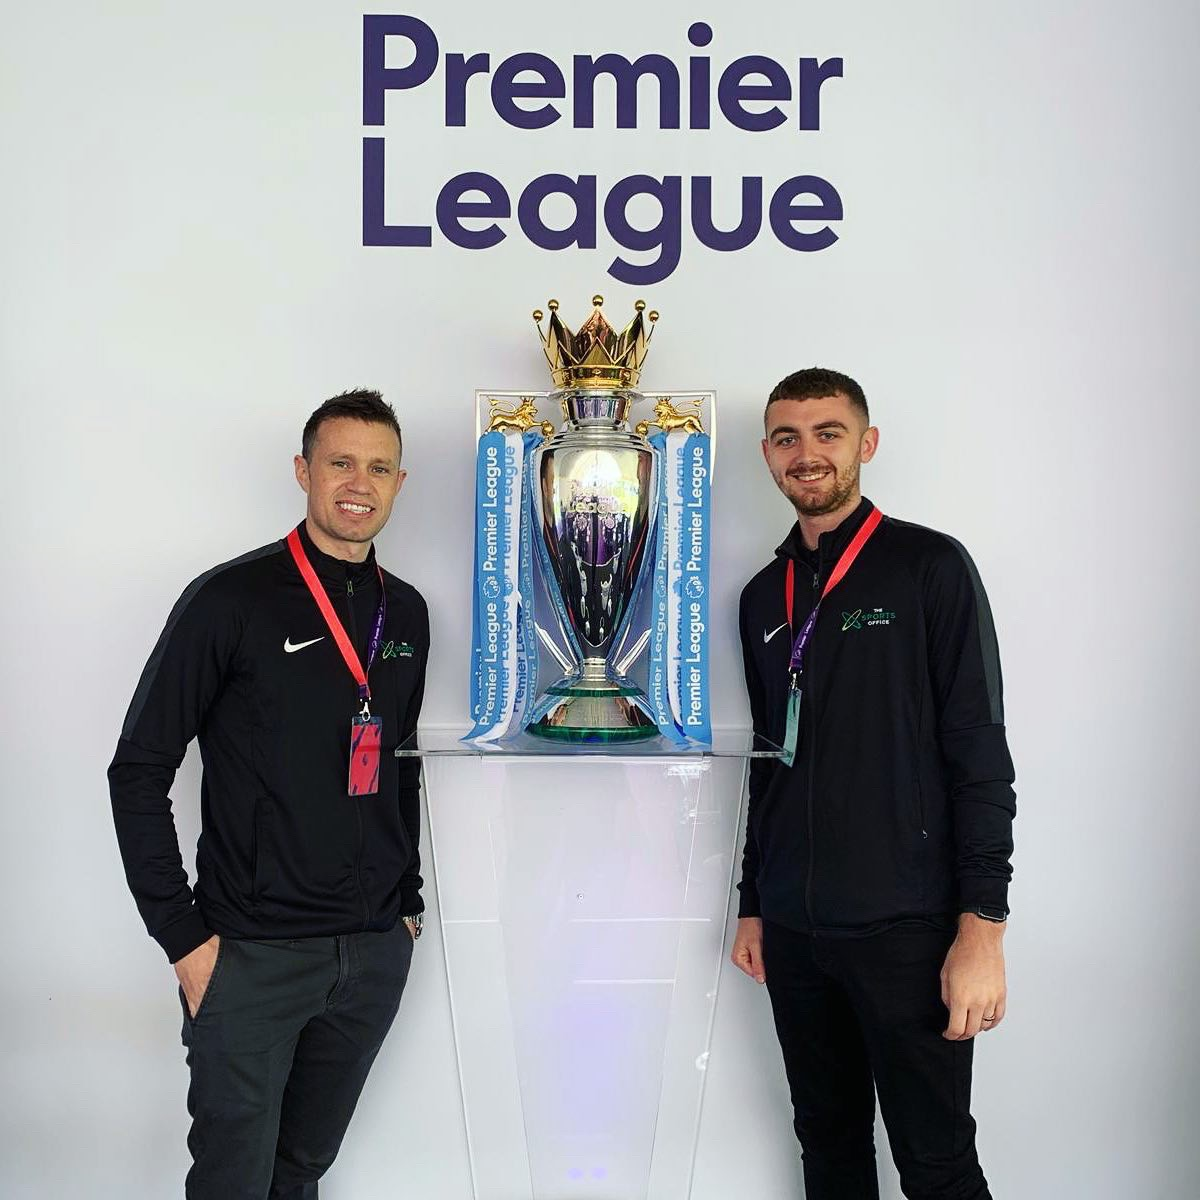 Client Manager's Carl & Dan at Premier League Youth Development Conference